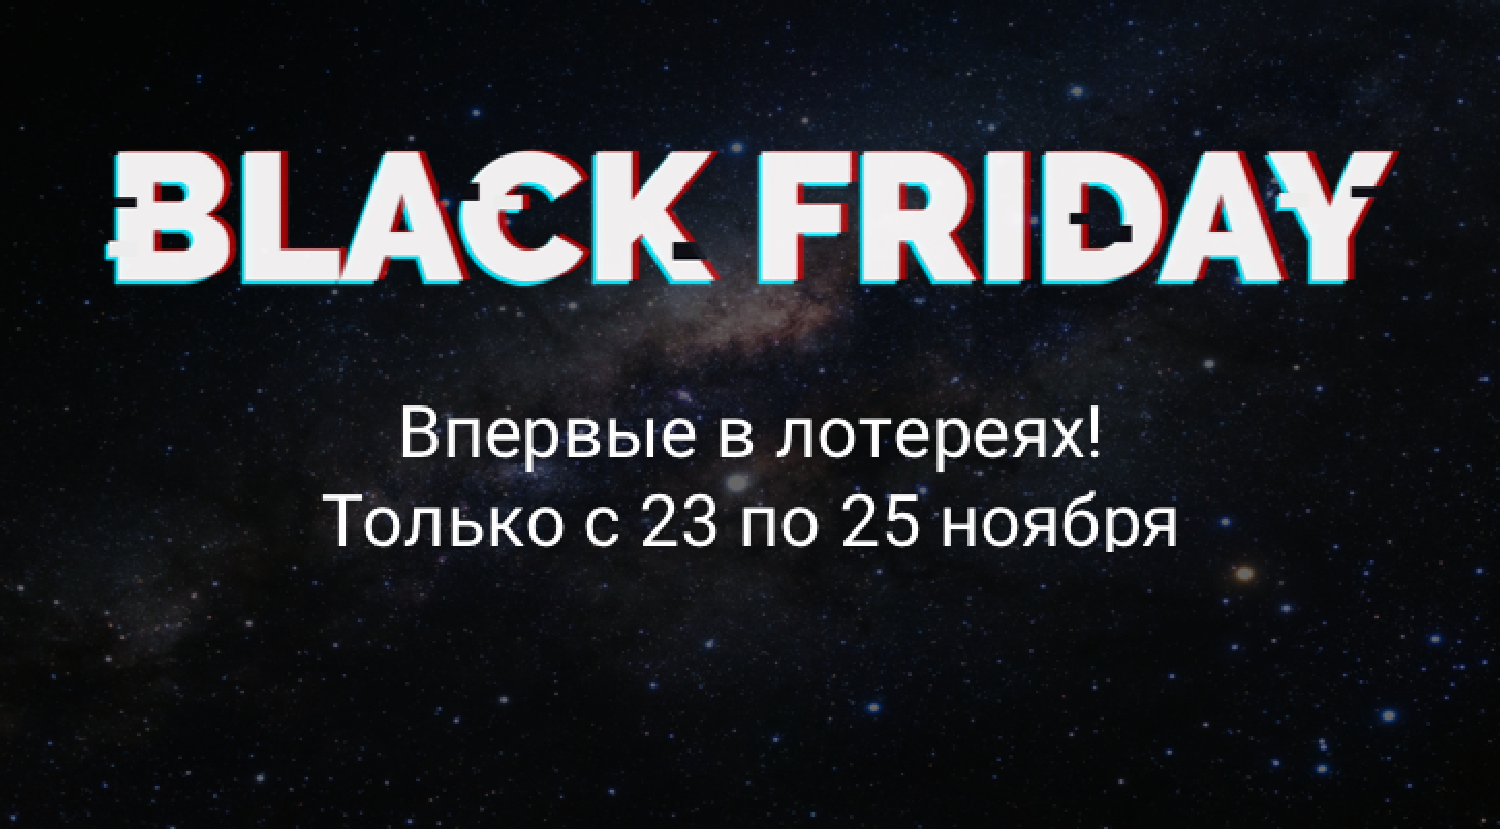 Black Friday в лотереях с 23 по 25 ноября!